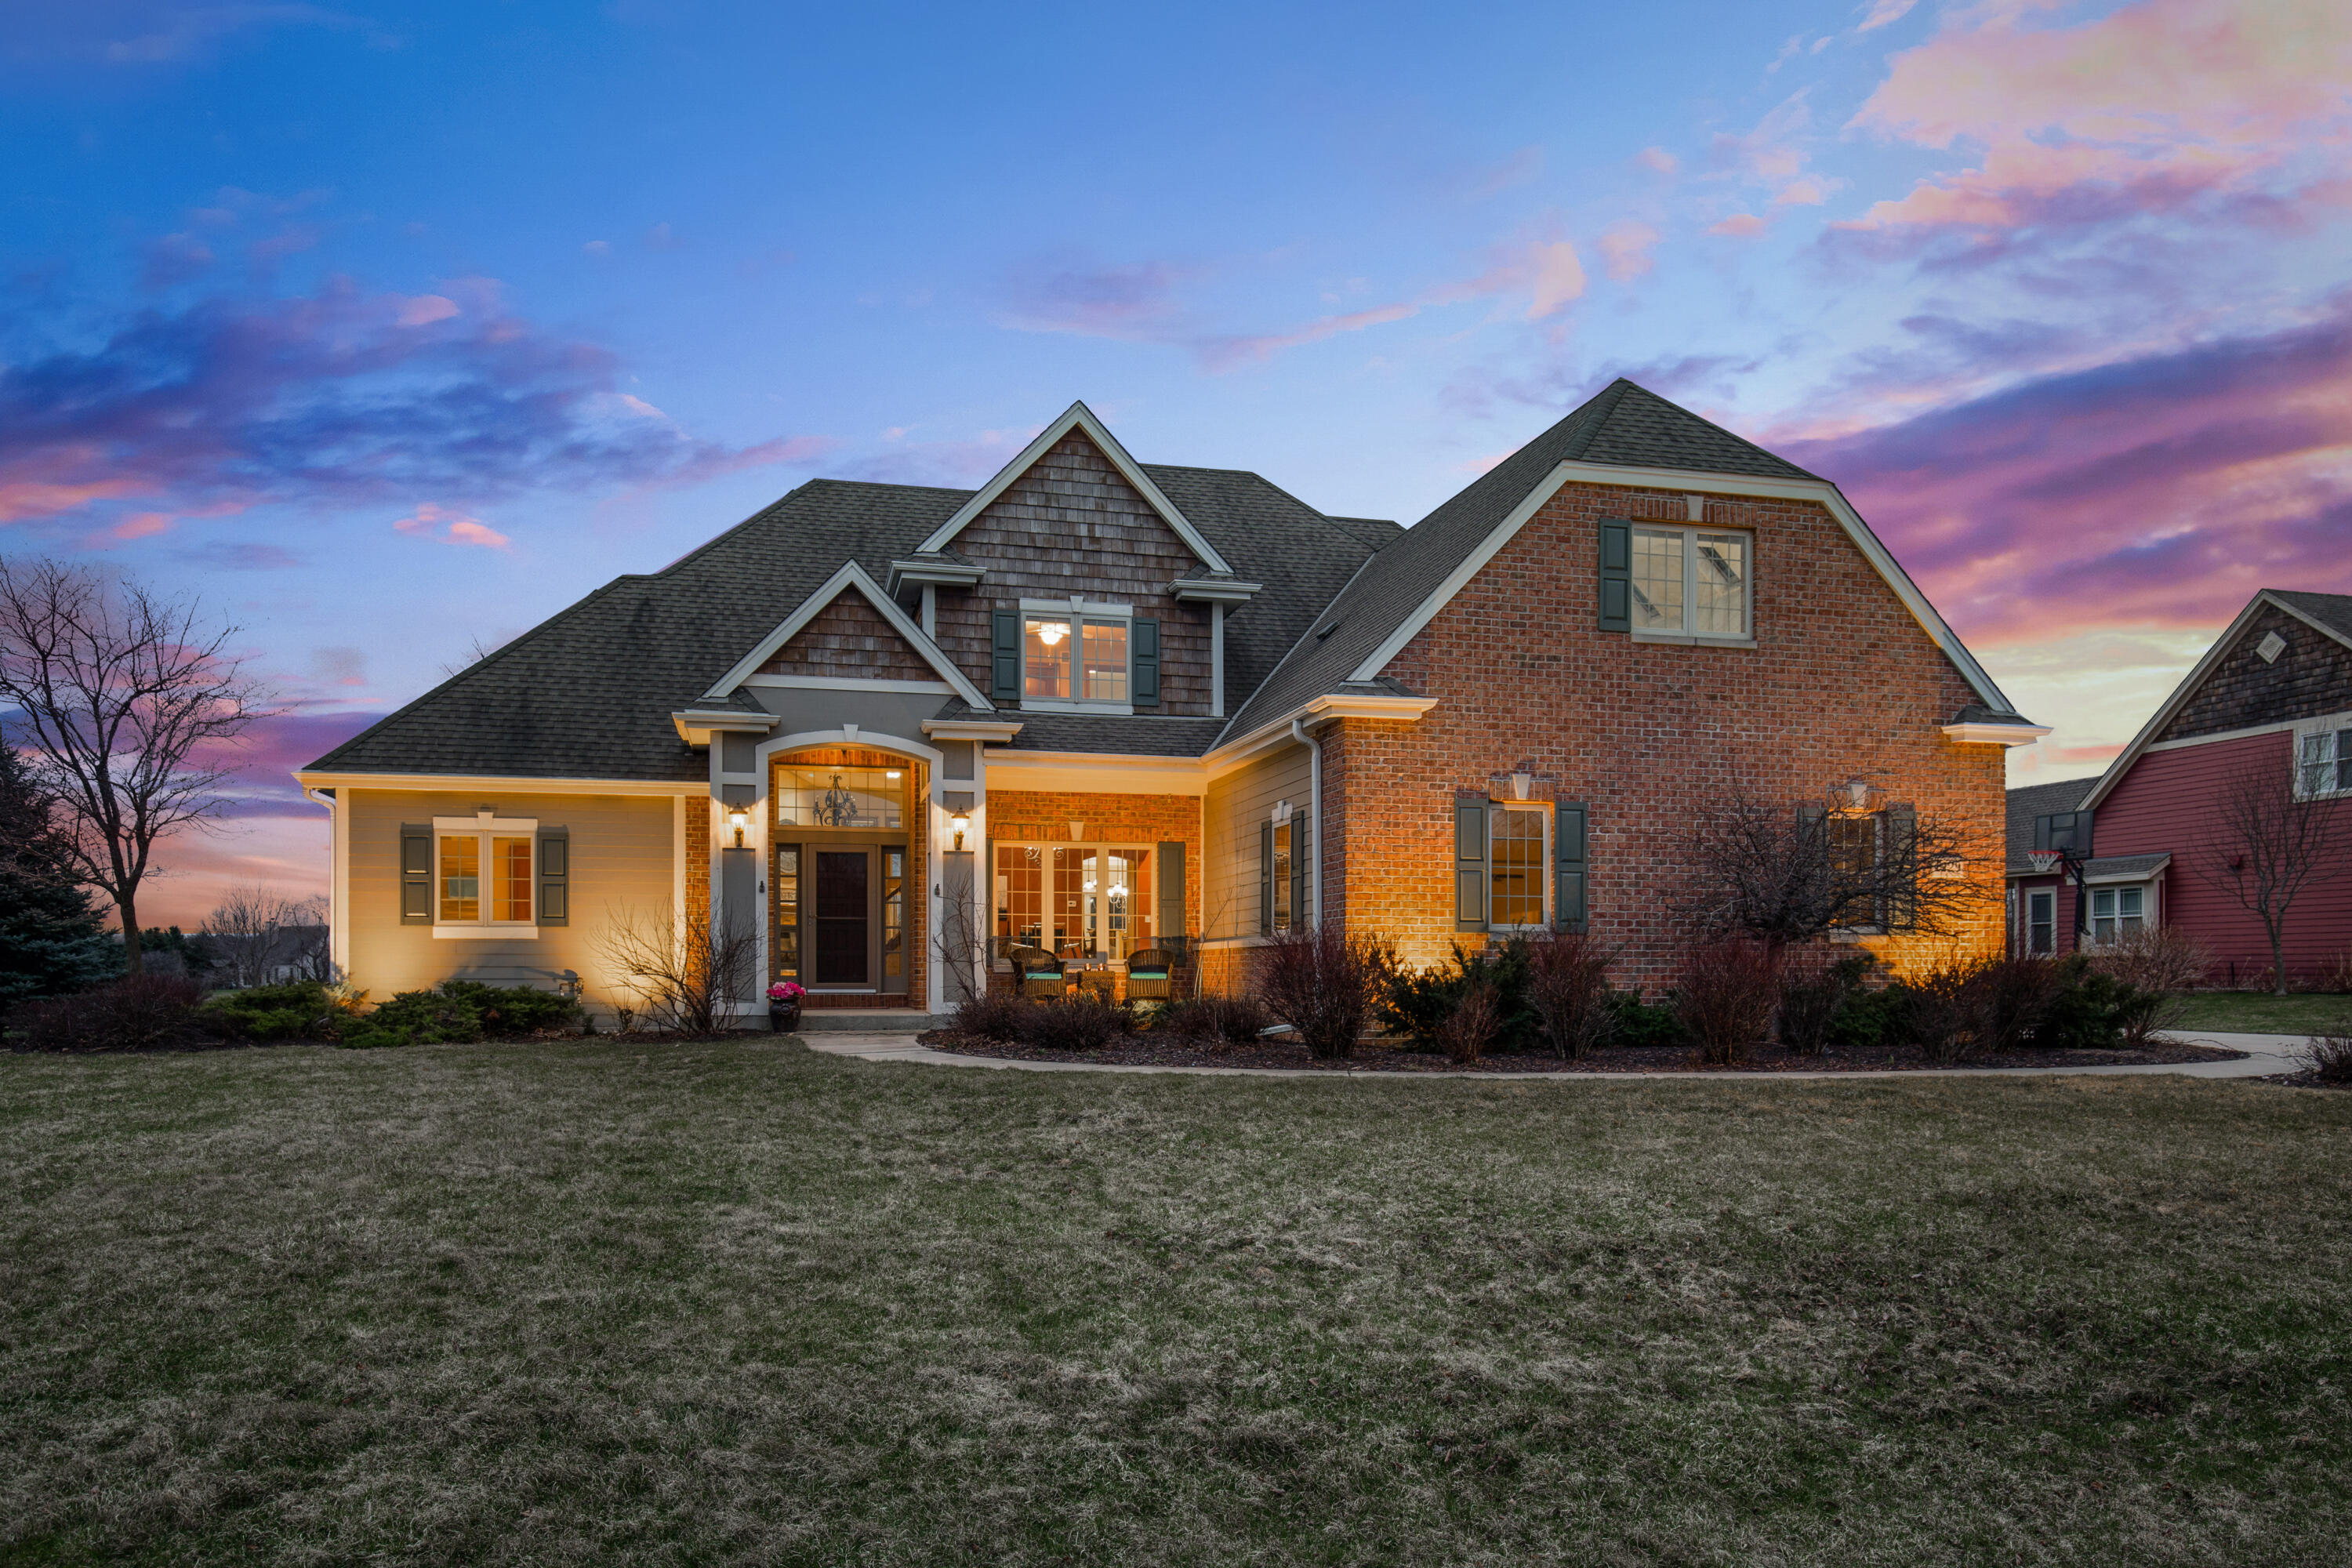 1229 Four Winds Way, Hartland, Wisconsin 53029, 5 Bedrooms Bedrooms, ,3 BathroomsBathrooms,Single-Family,For Sale,Four Winds Way,1733011